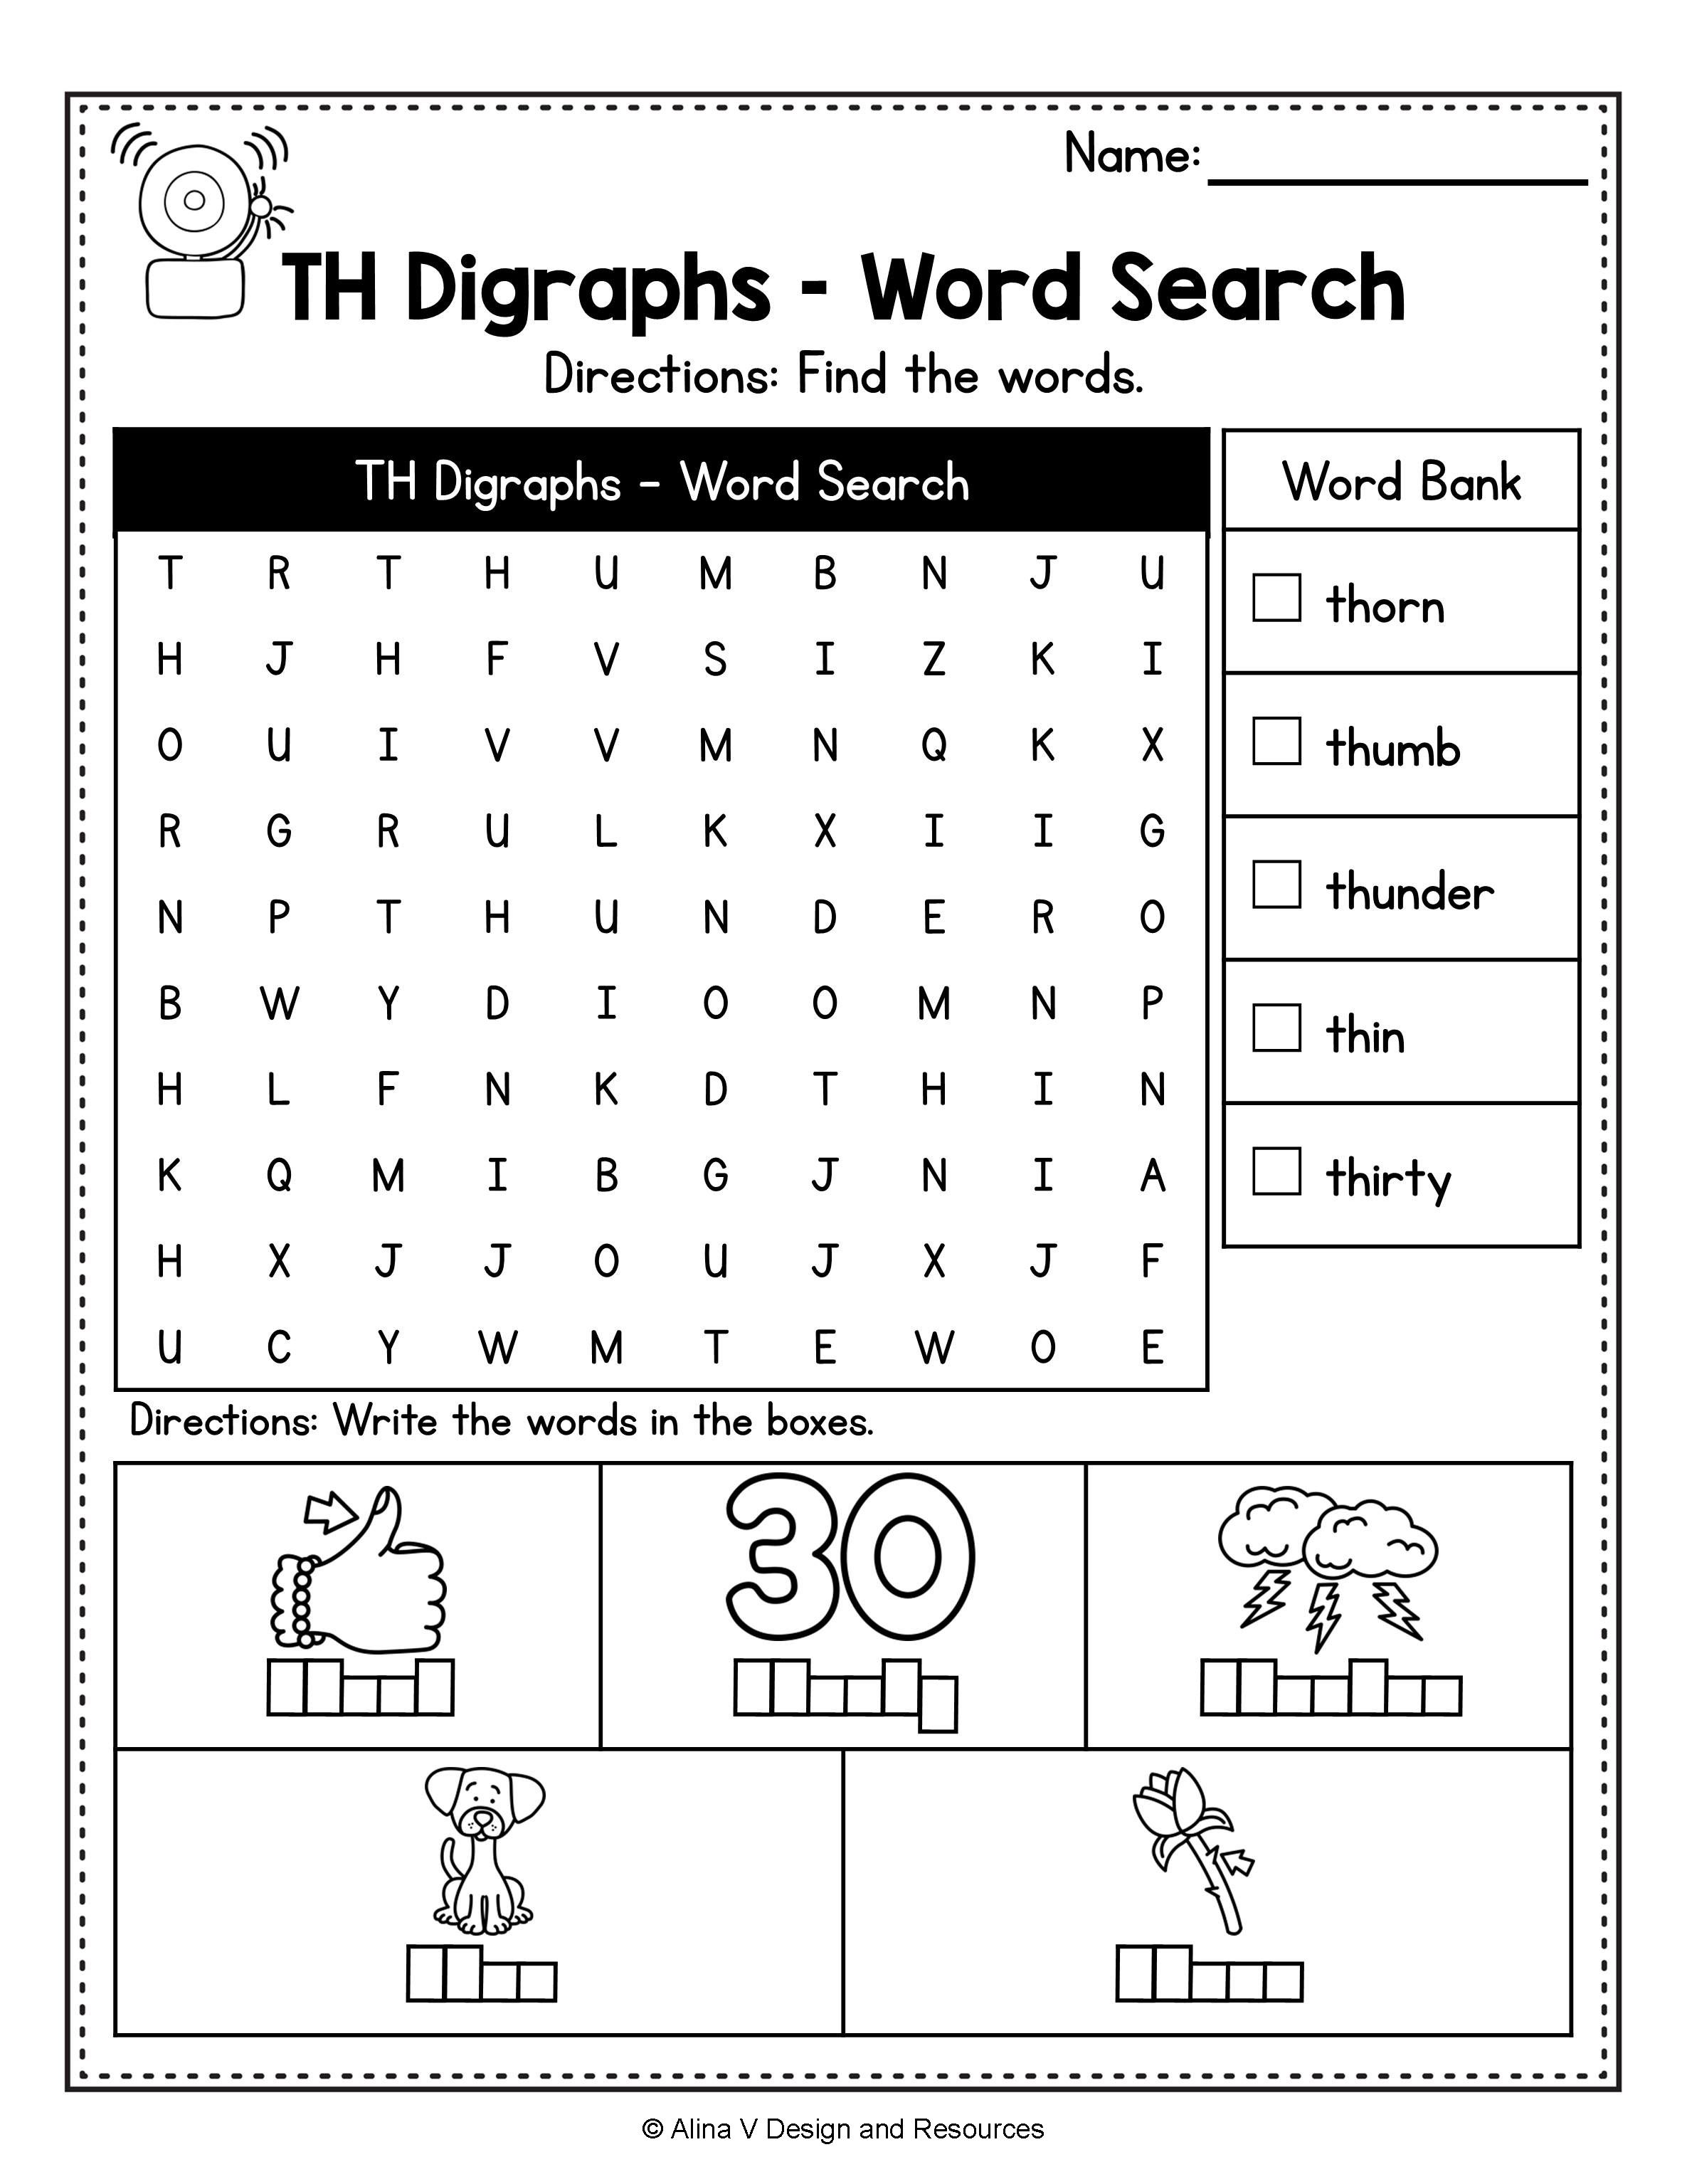 Consonant Digraphs Worksheets Sh Ch Th Wh Ph Kn Wr Qu In 2020 Digraph Primary Teachers Resources Teaching Vowels